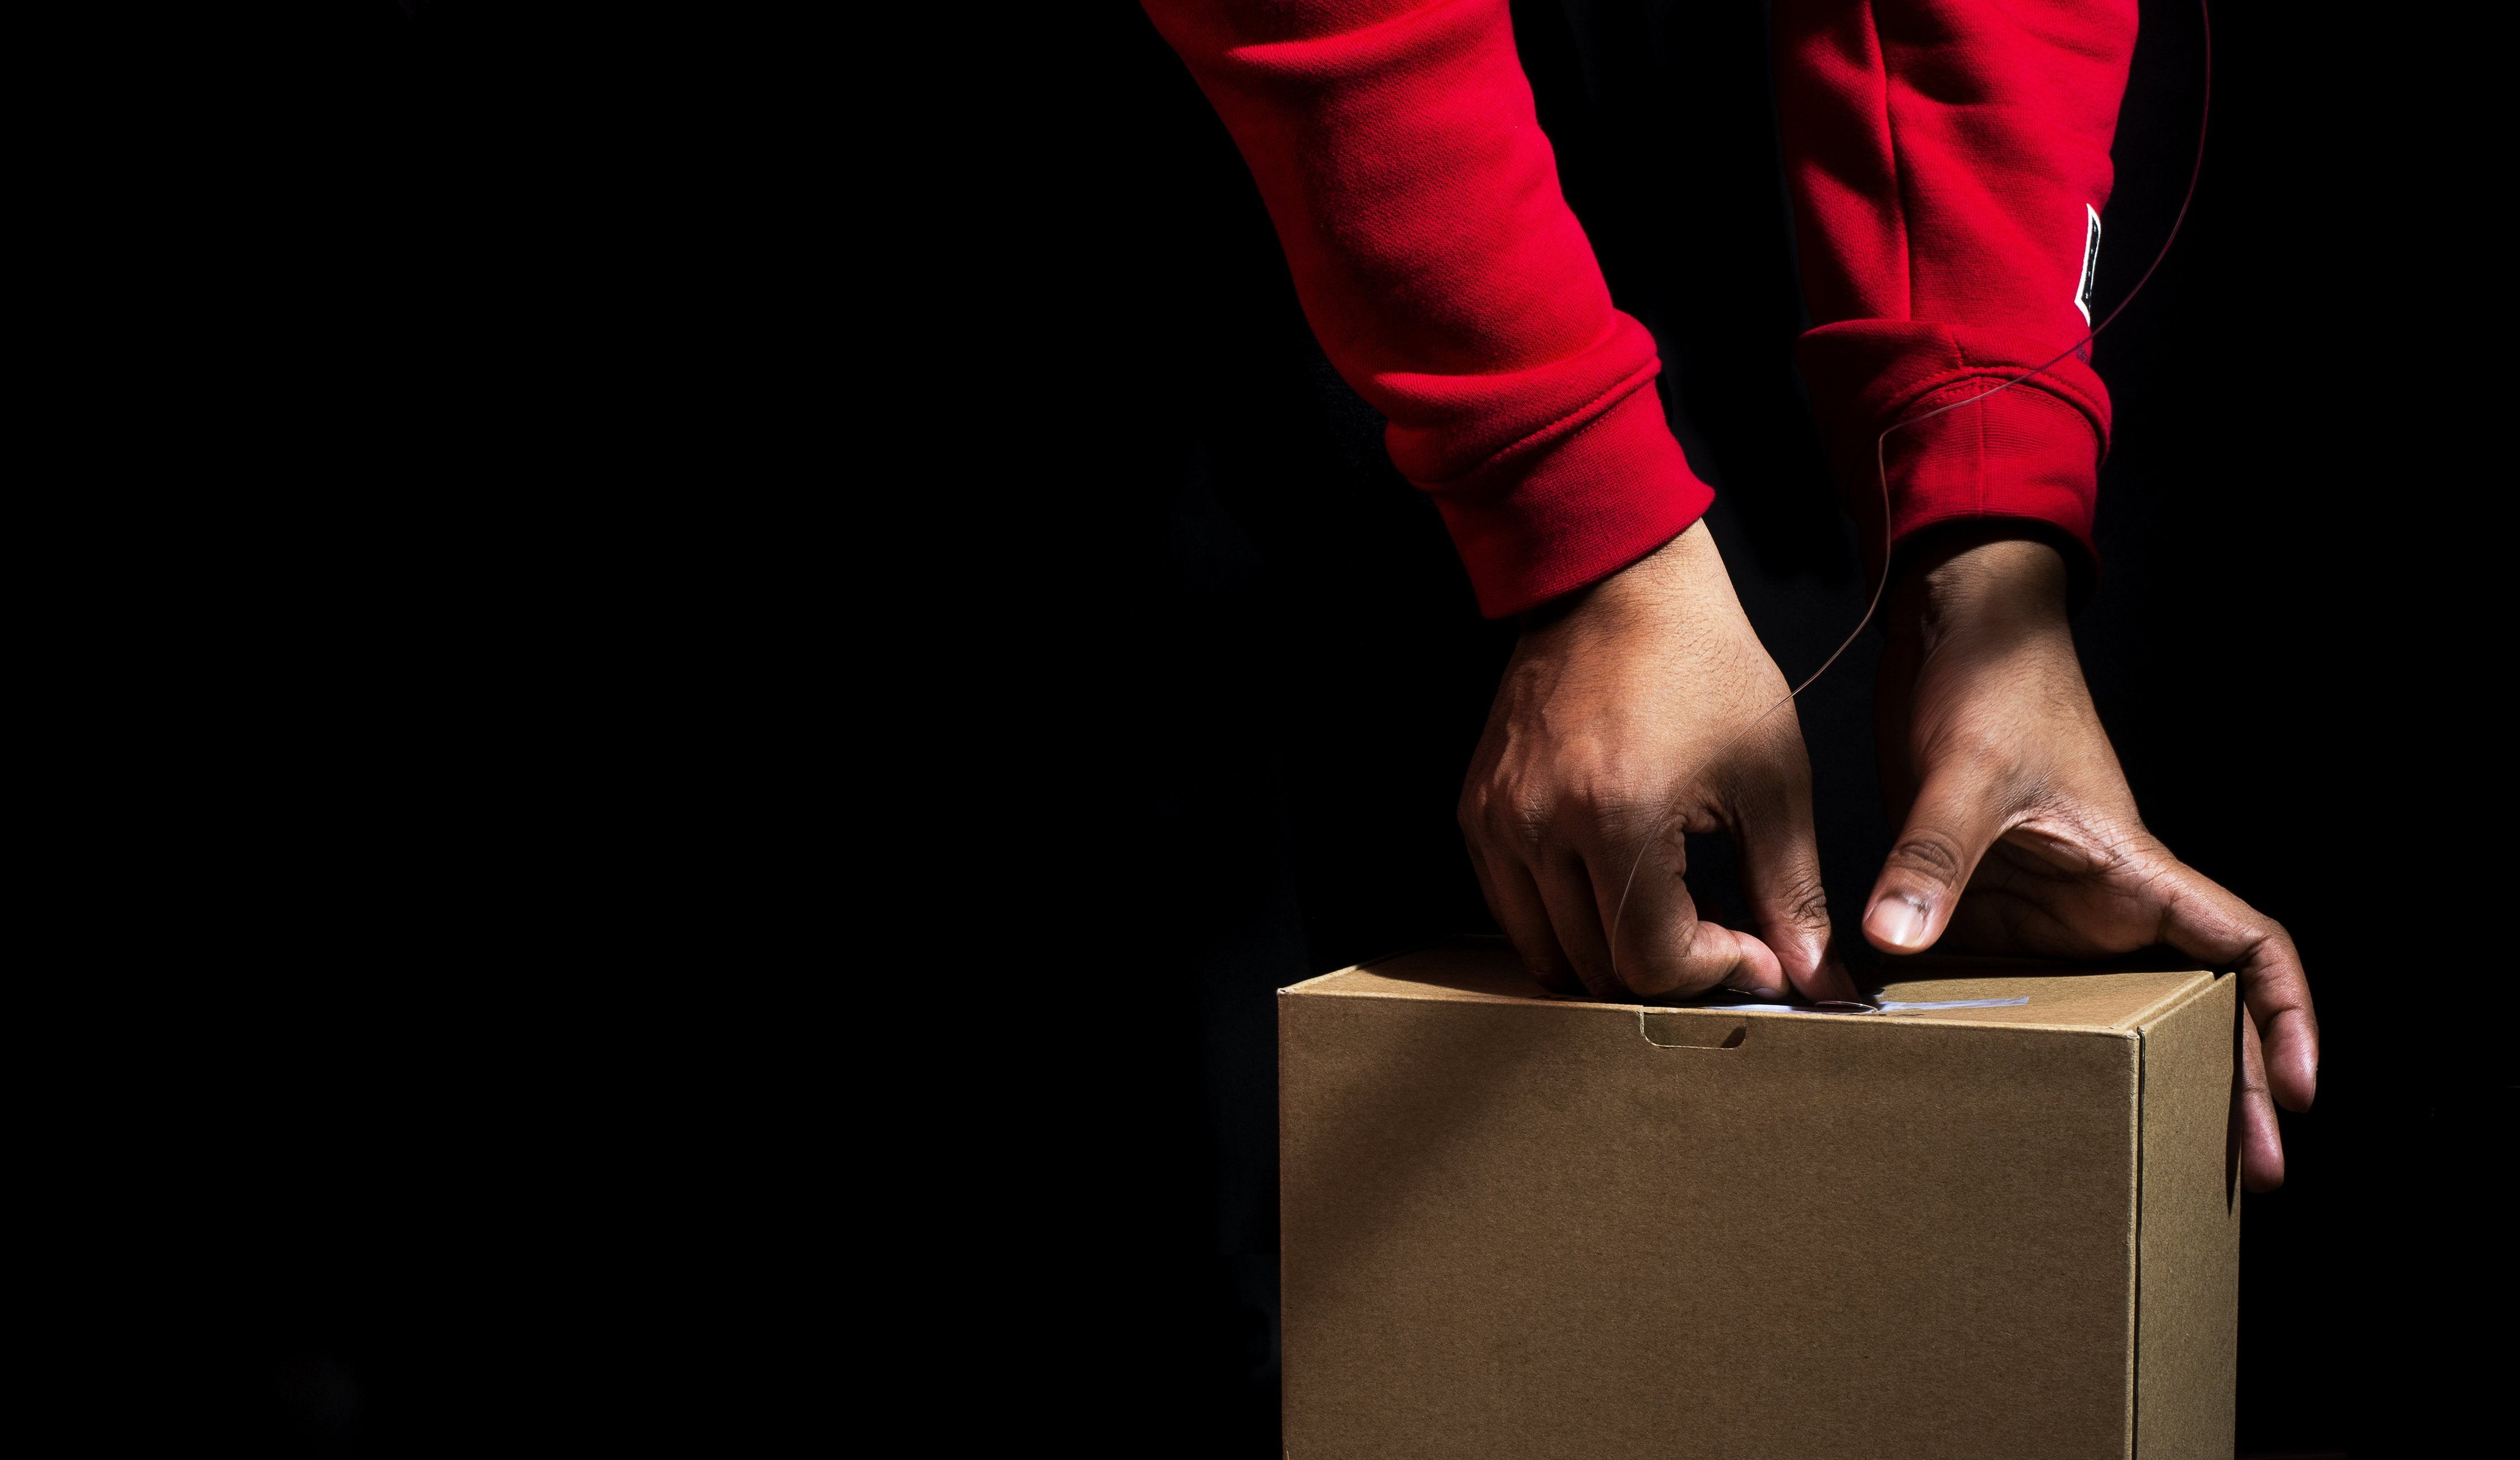 Image of a hands sealing a cardboard box with tape ready for shipping to the customer